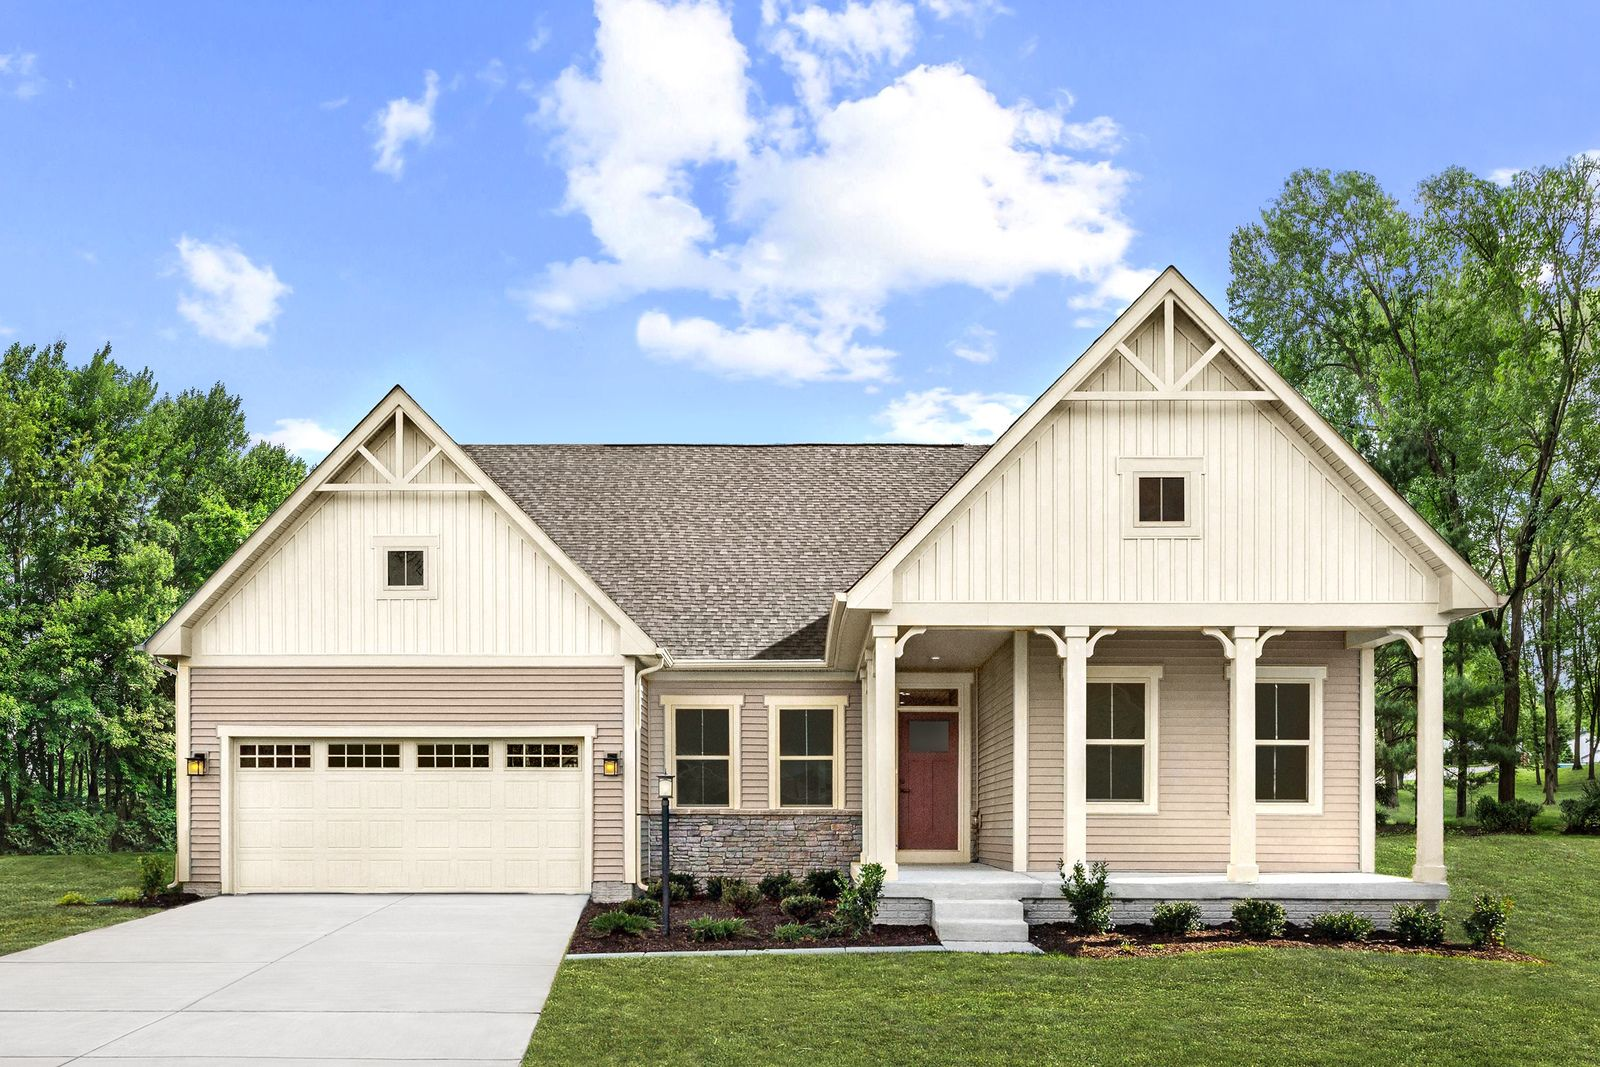 'The Park' by Ryan Homes-GVS in Columbia